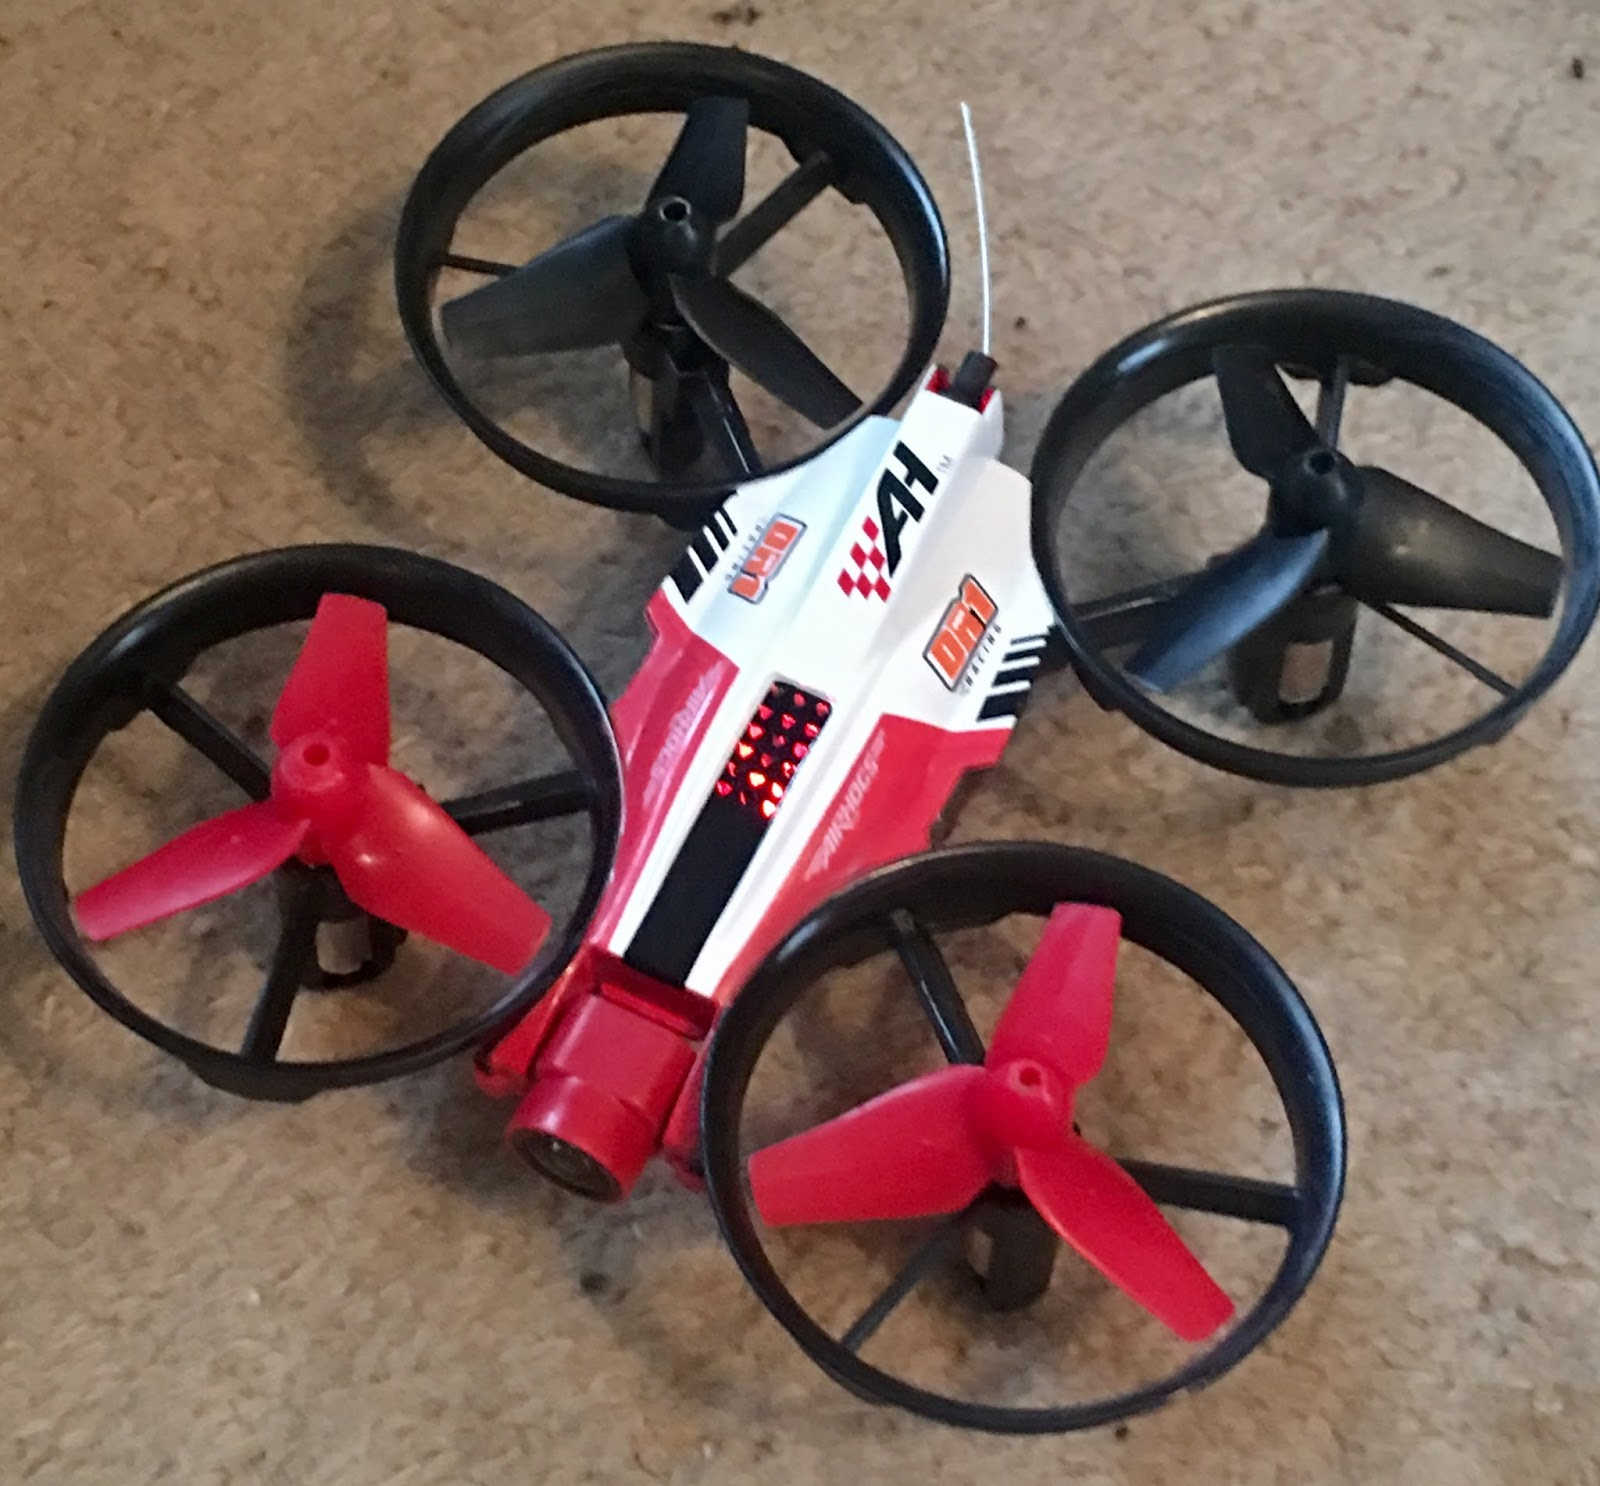 Air Hogs DR1 FPV Race Drone Record Or Live Stream Video Footage AHRaceLikeAPro